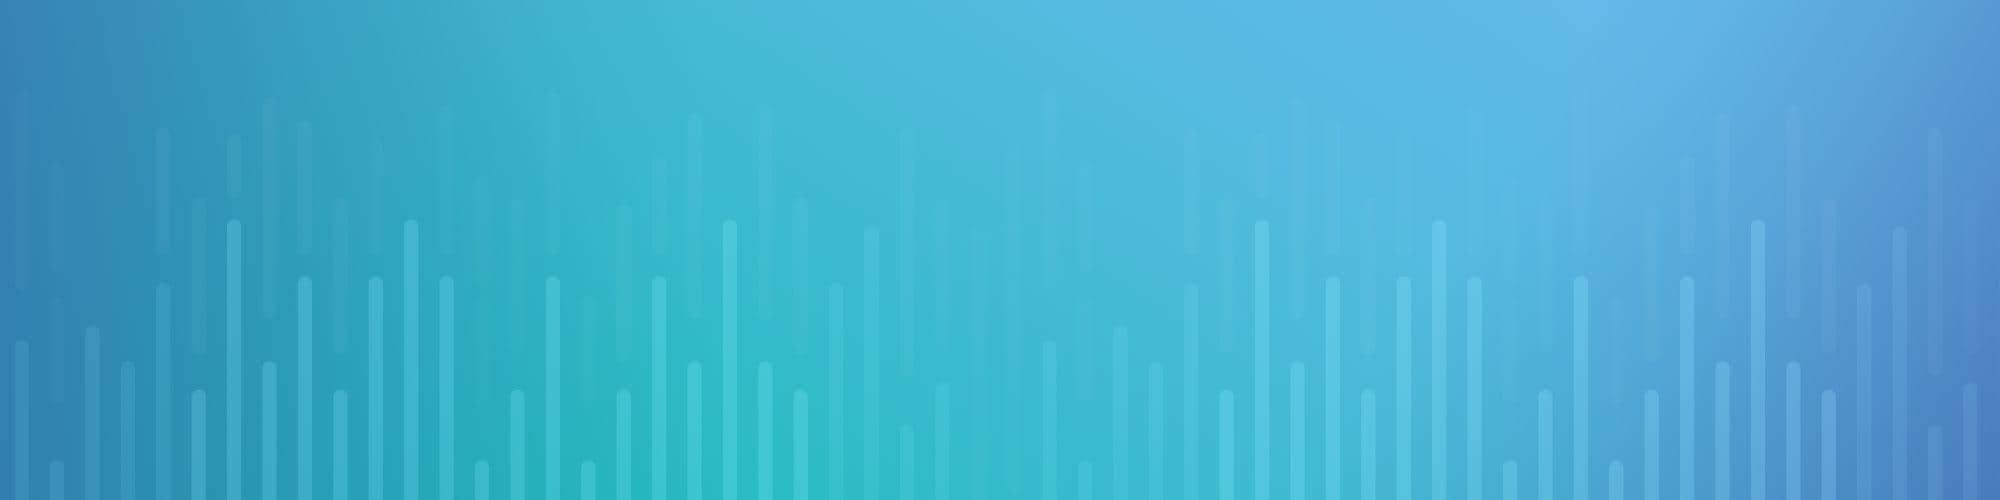 violet teal and blue bar chart